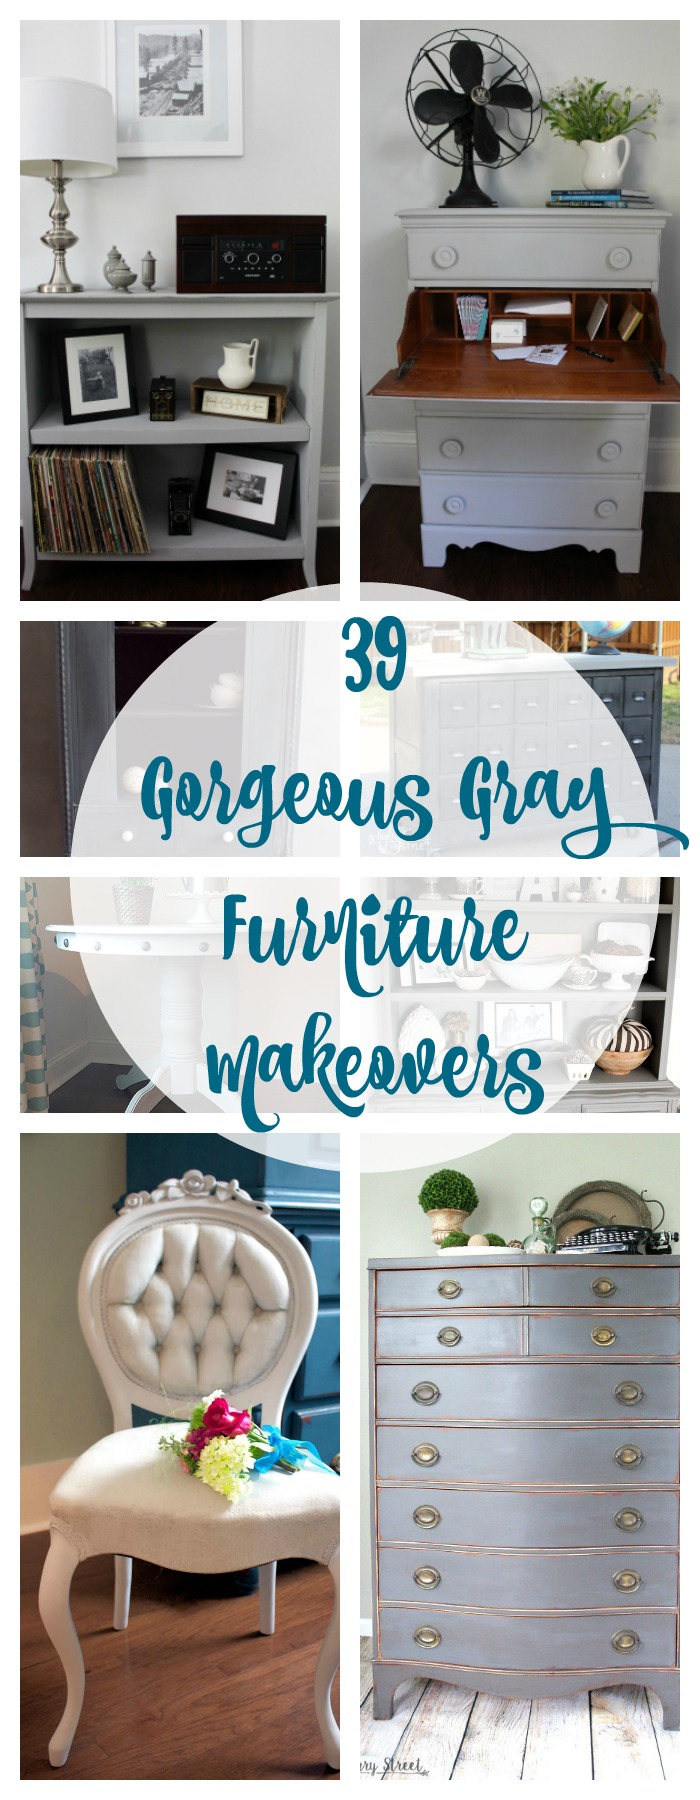 furniture makeovers. 39 Gorgeous Gray Furniture Makeovers. Painted Furniture. Makeovers